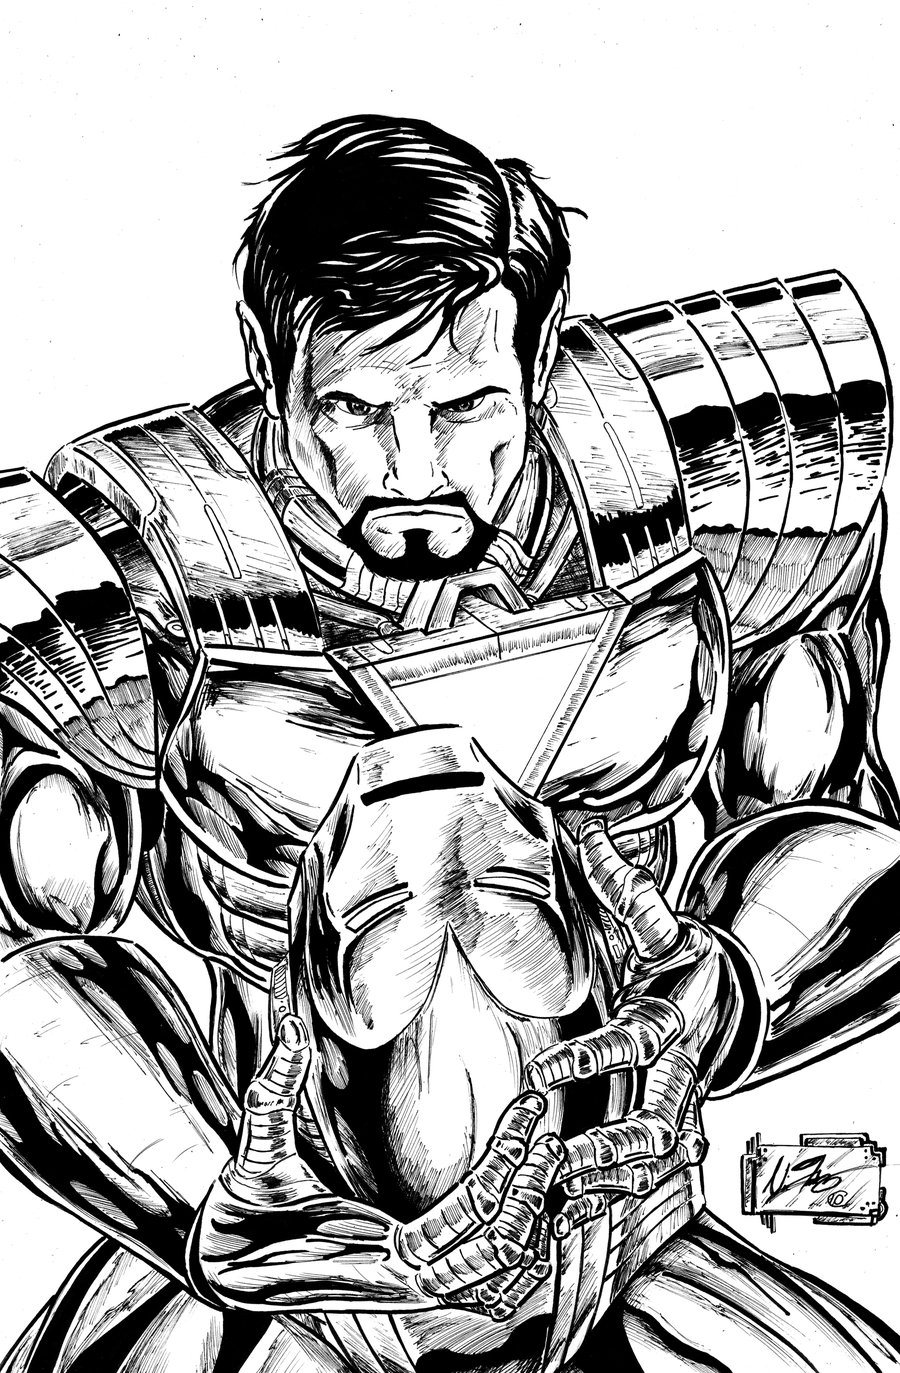 Free Iron Man coloring page to print and color